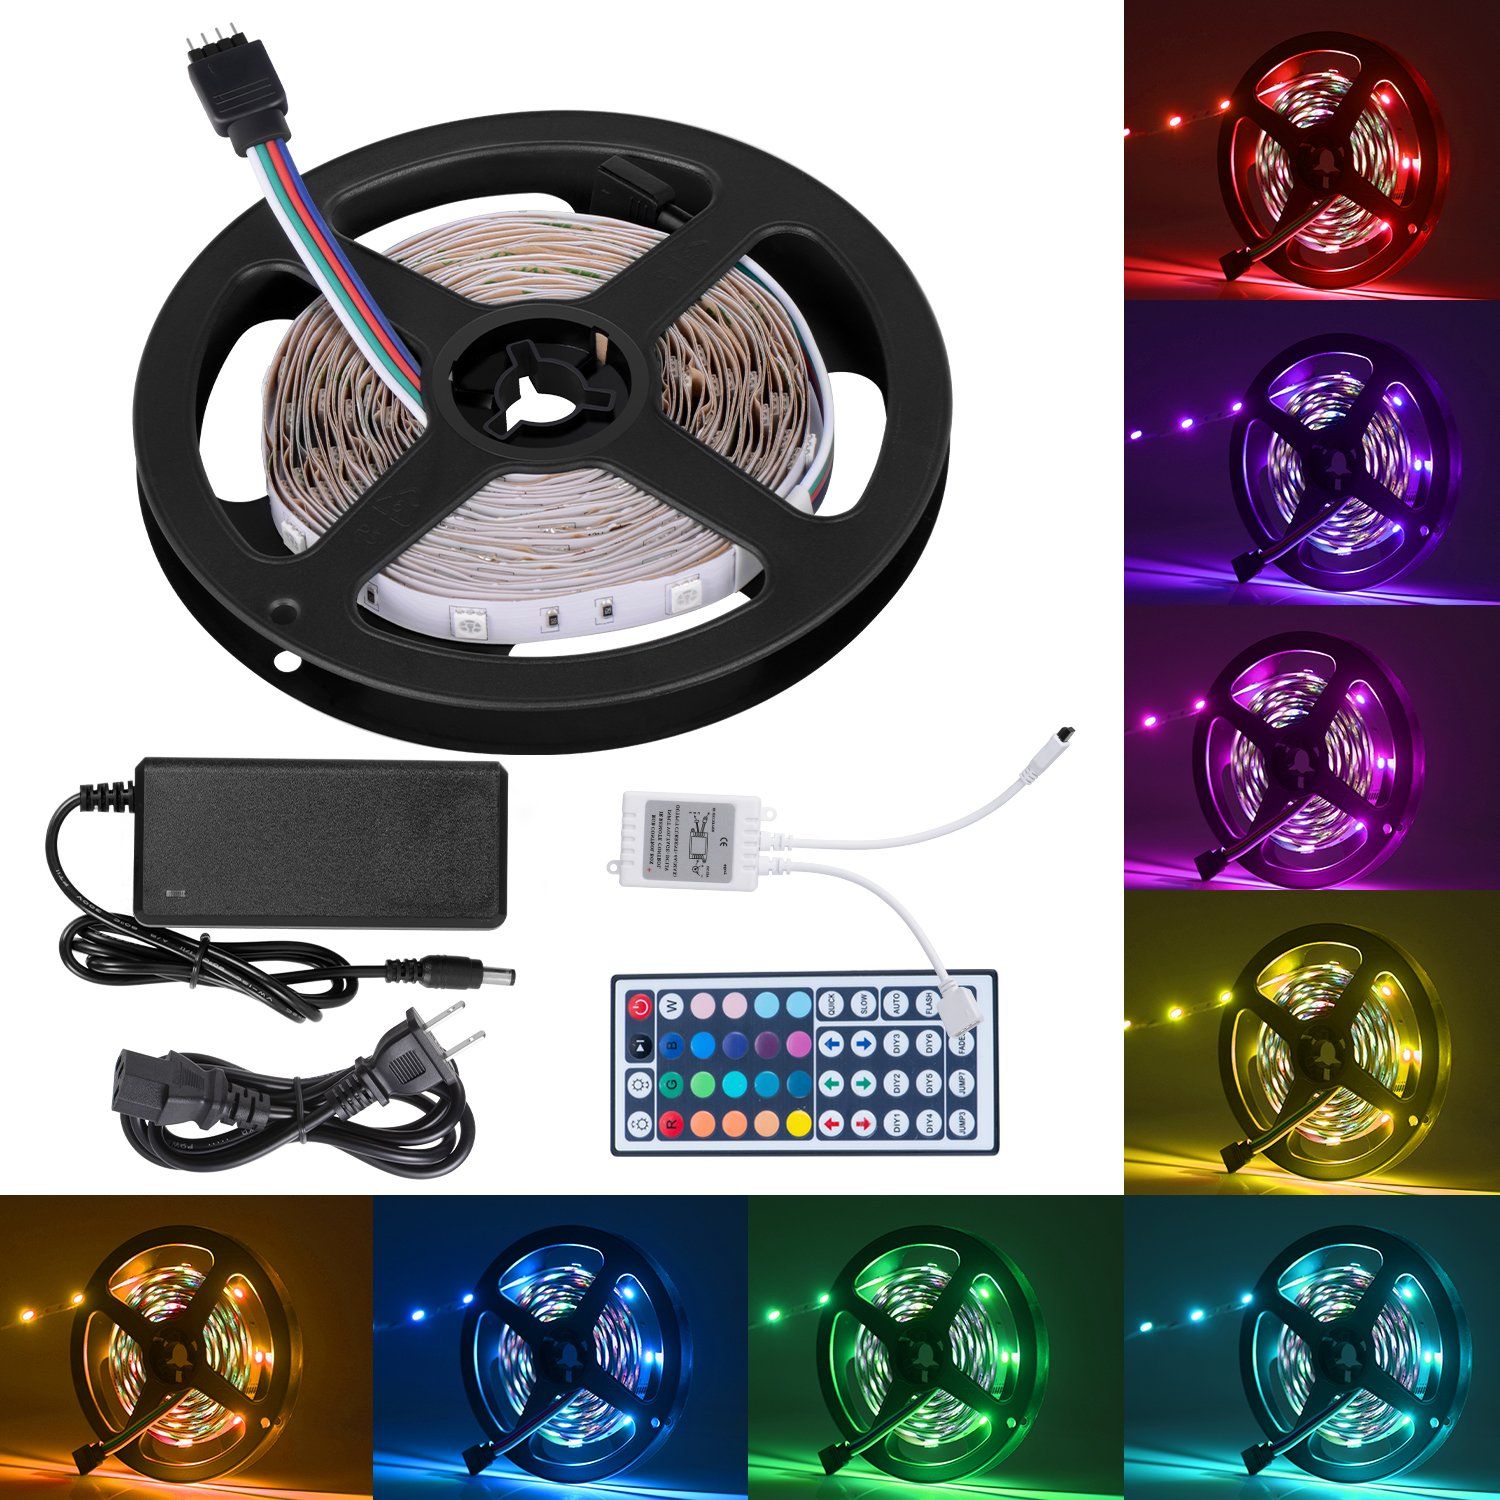 Boomile 16.4ft Flexible LED Light Strip Kit, RGB Color Changing, 150 Units 5050 LEDs Non-Waterproof, DC 12v LED Strip Lights with 44Key Remote Controller and Power Supply for Kitchen Bedroom Car Bar by Boomile